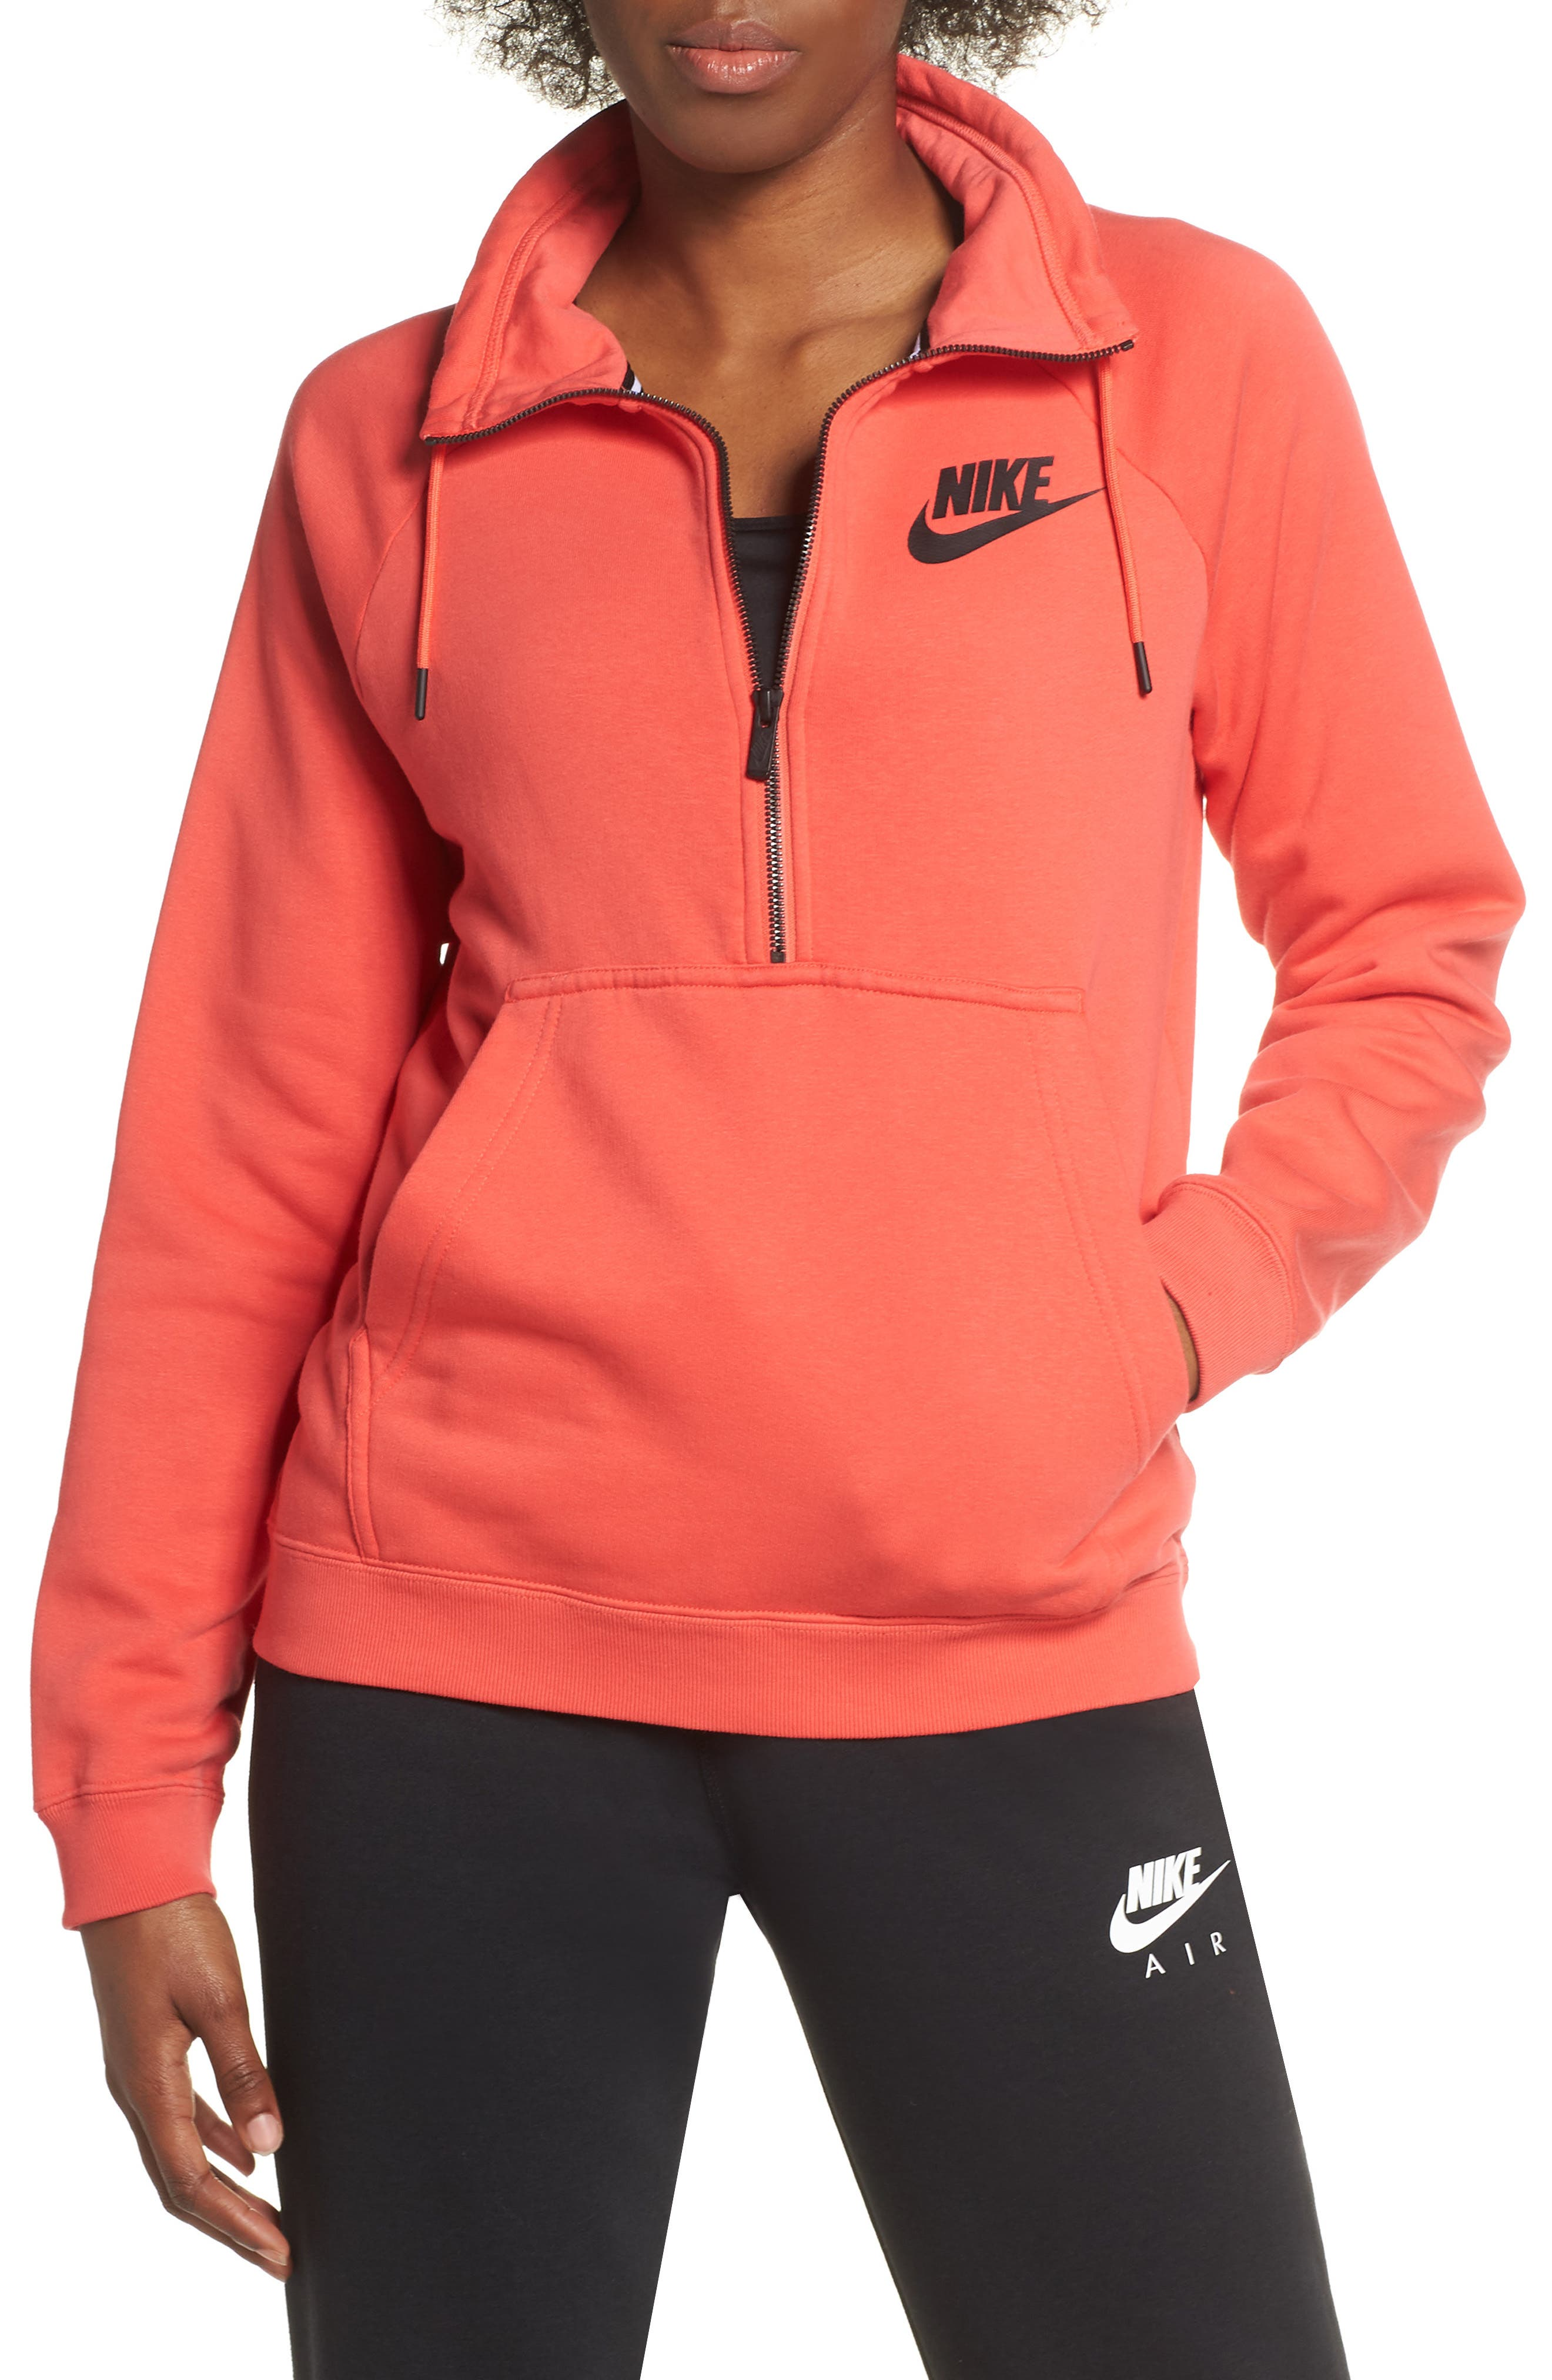 98d130681553 Women s Nike Sweatshirts   Hoodies